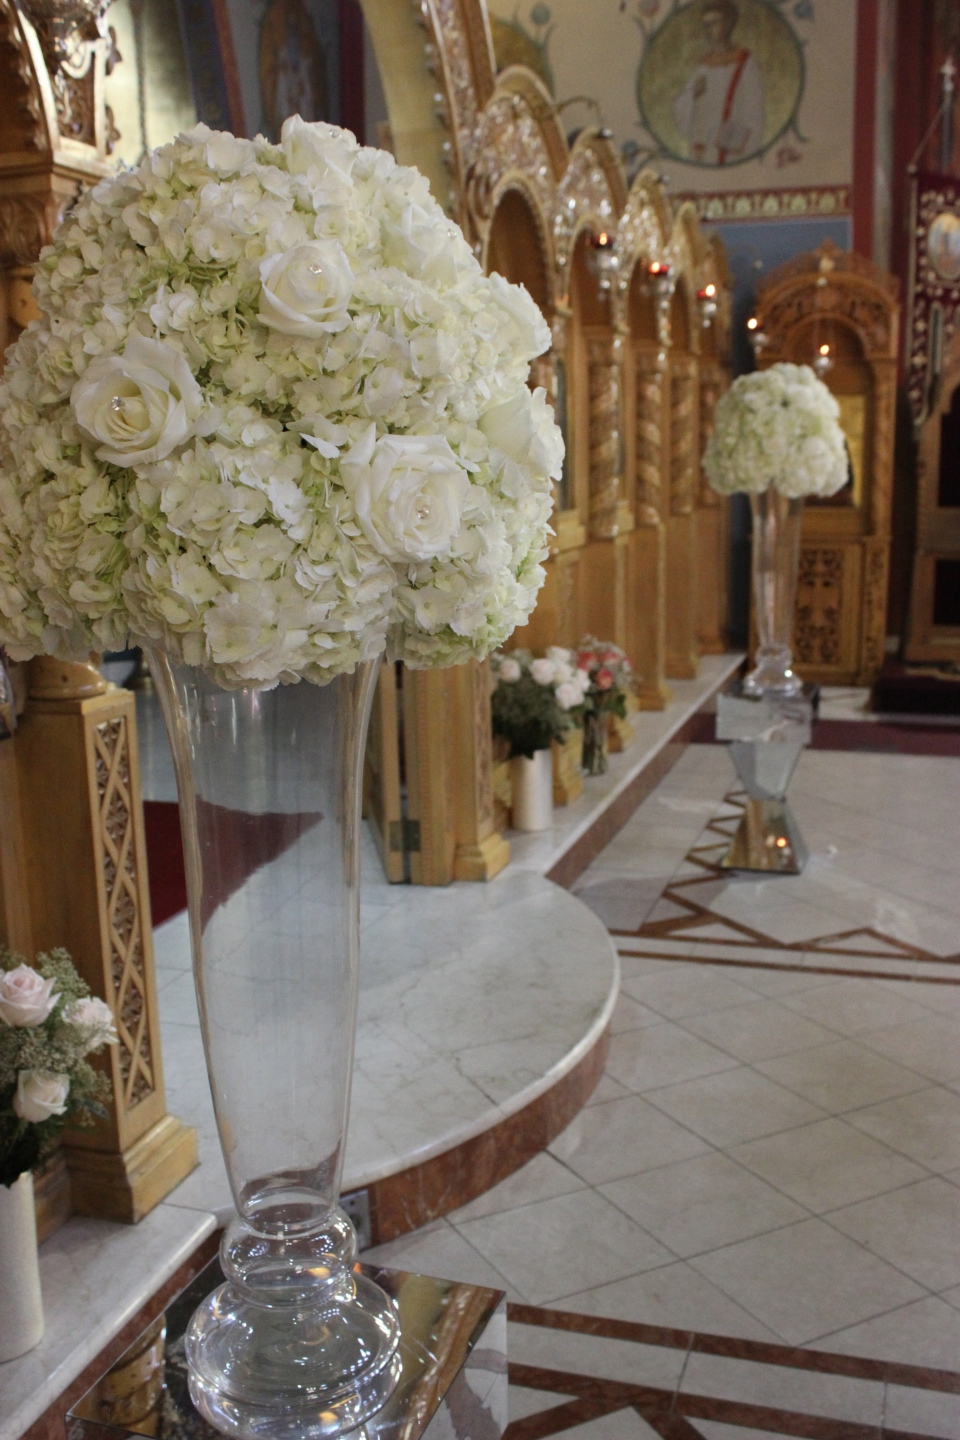 White hydrangea and rose altar pieces